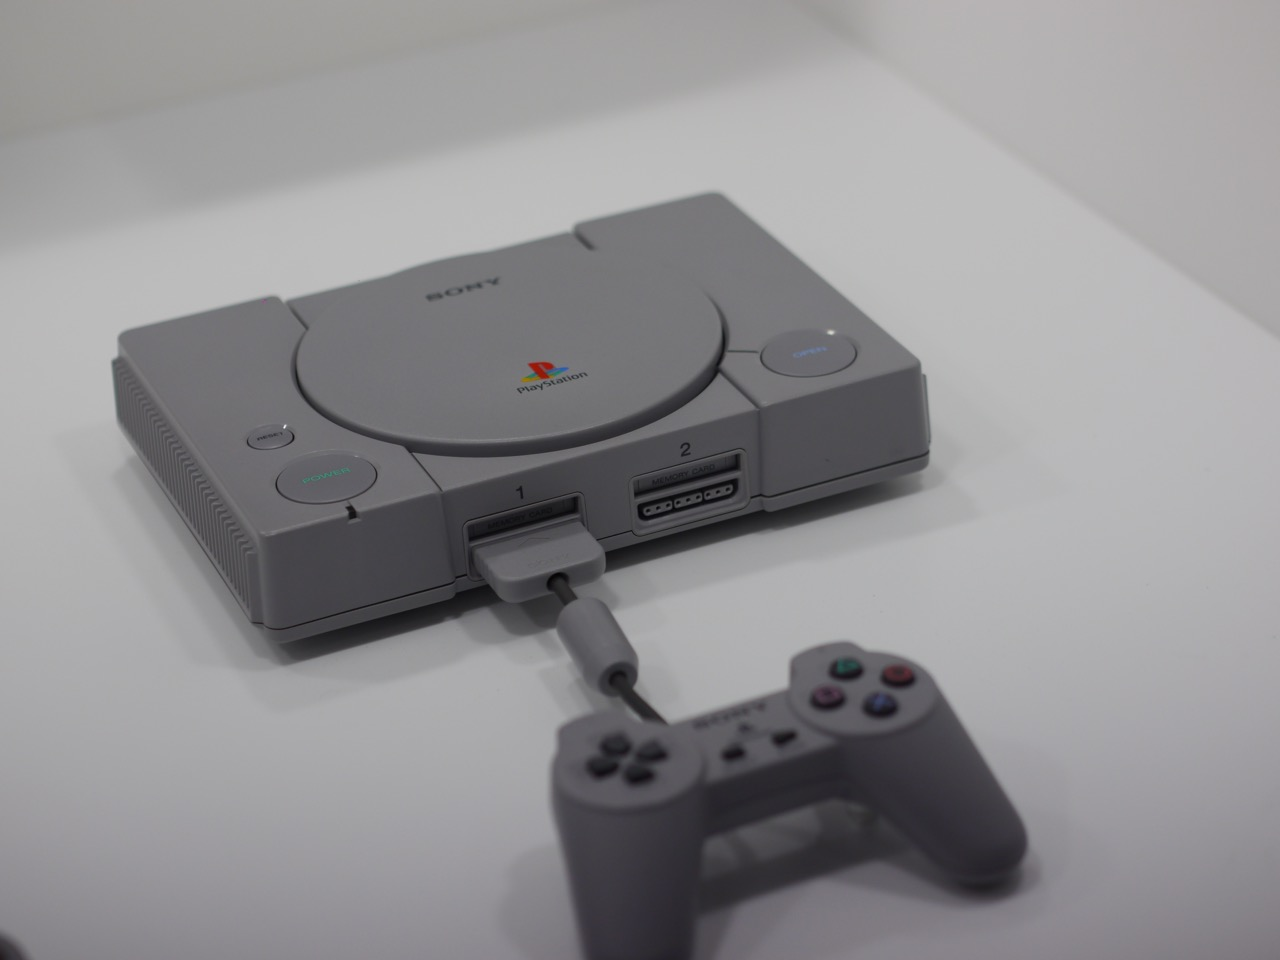 We've got some new up-close pictures of the PlayStation Classic at TGS screenshot